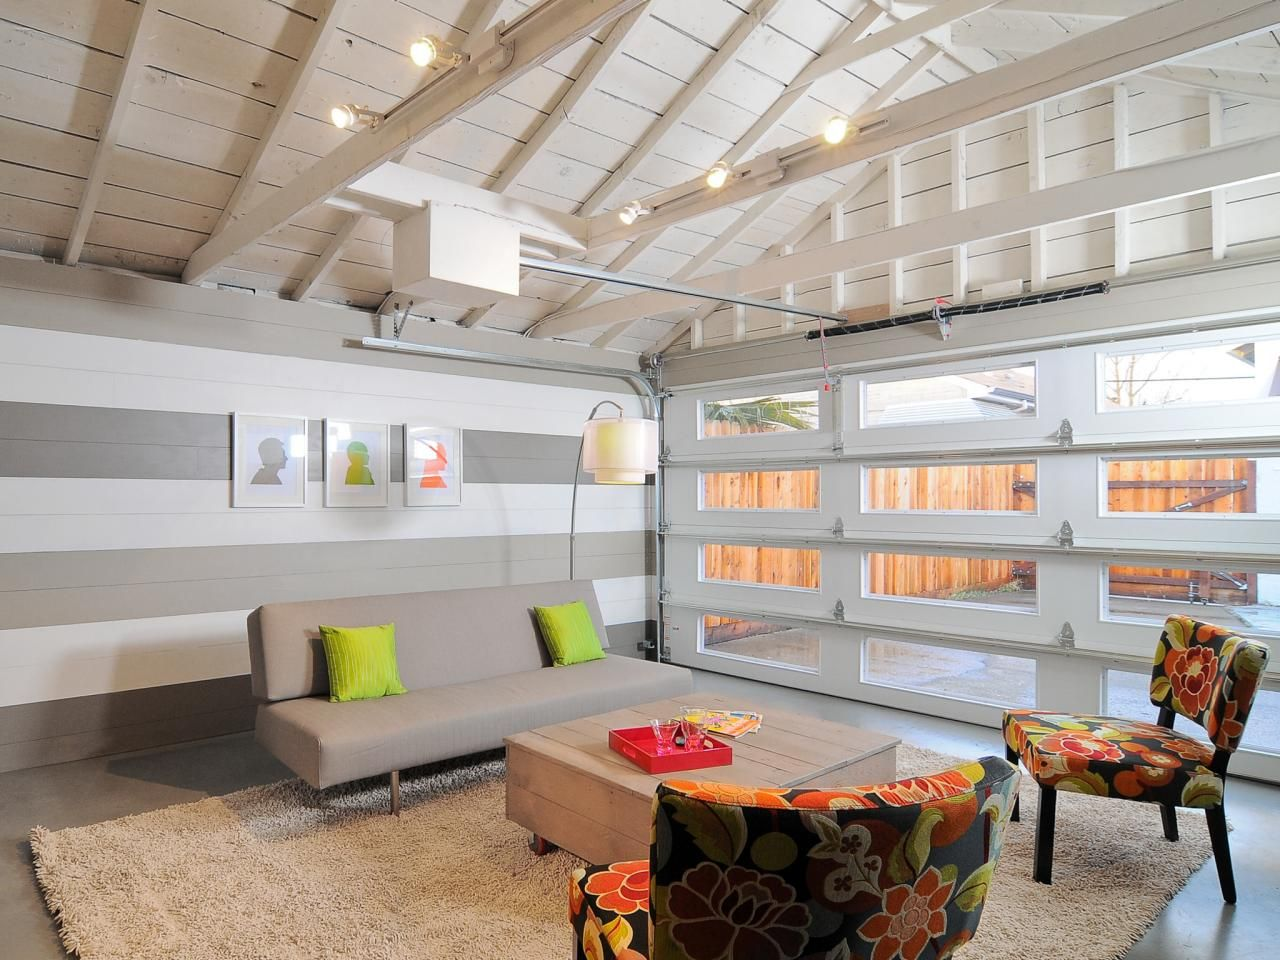 Home Garages Transformed Into Beautiful Living Spaces Converted GarageGarage RoomGarage